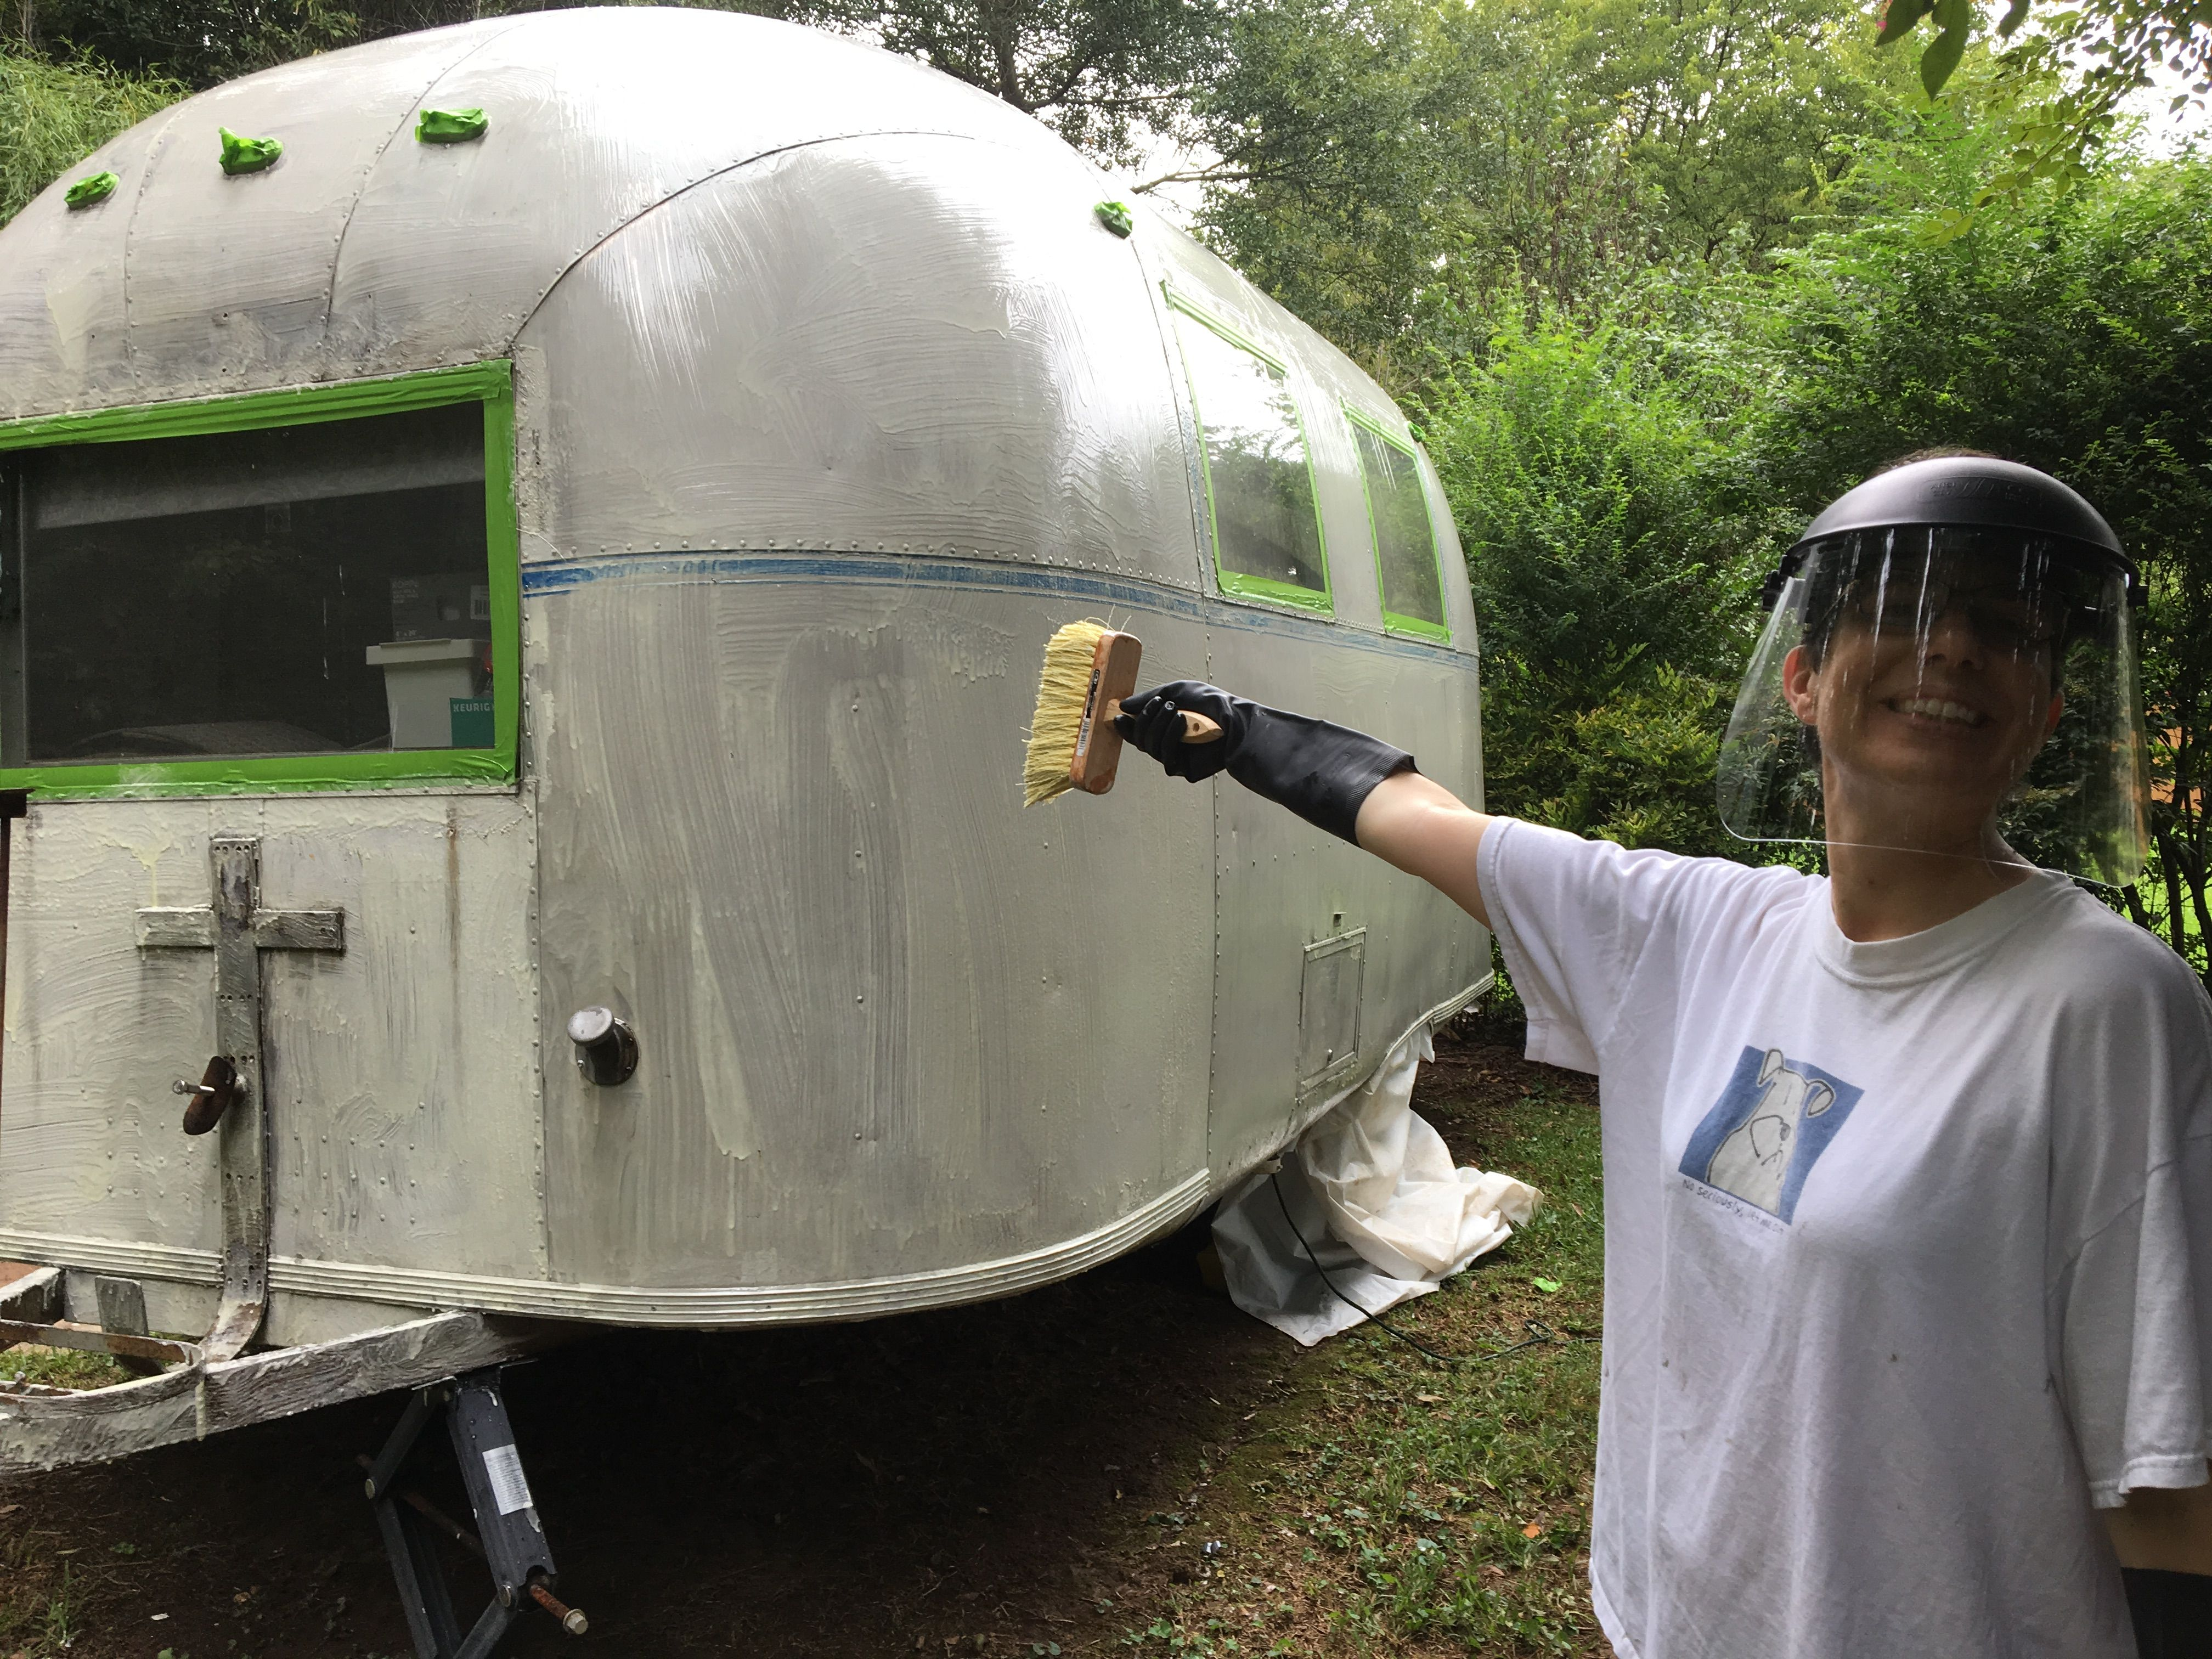 Stripping the old clear coat with PPG Aerospace paint